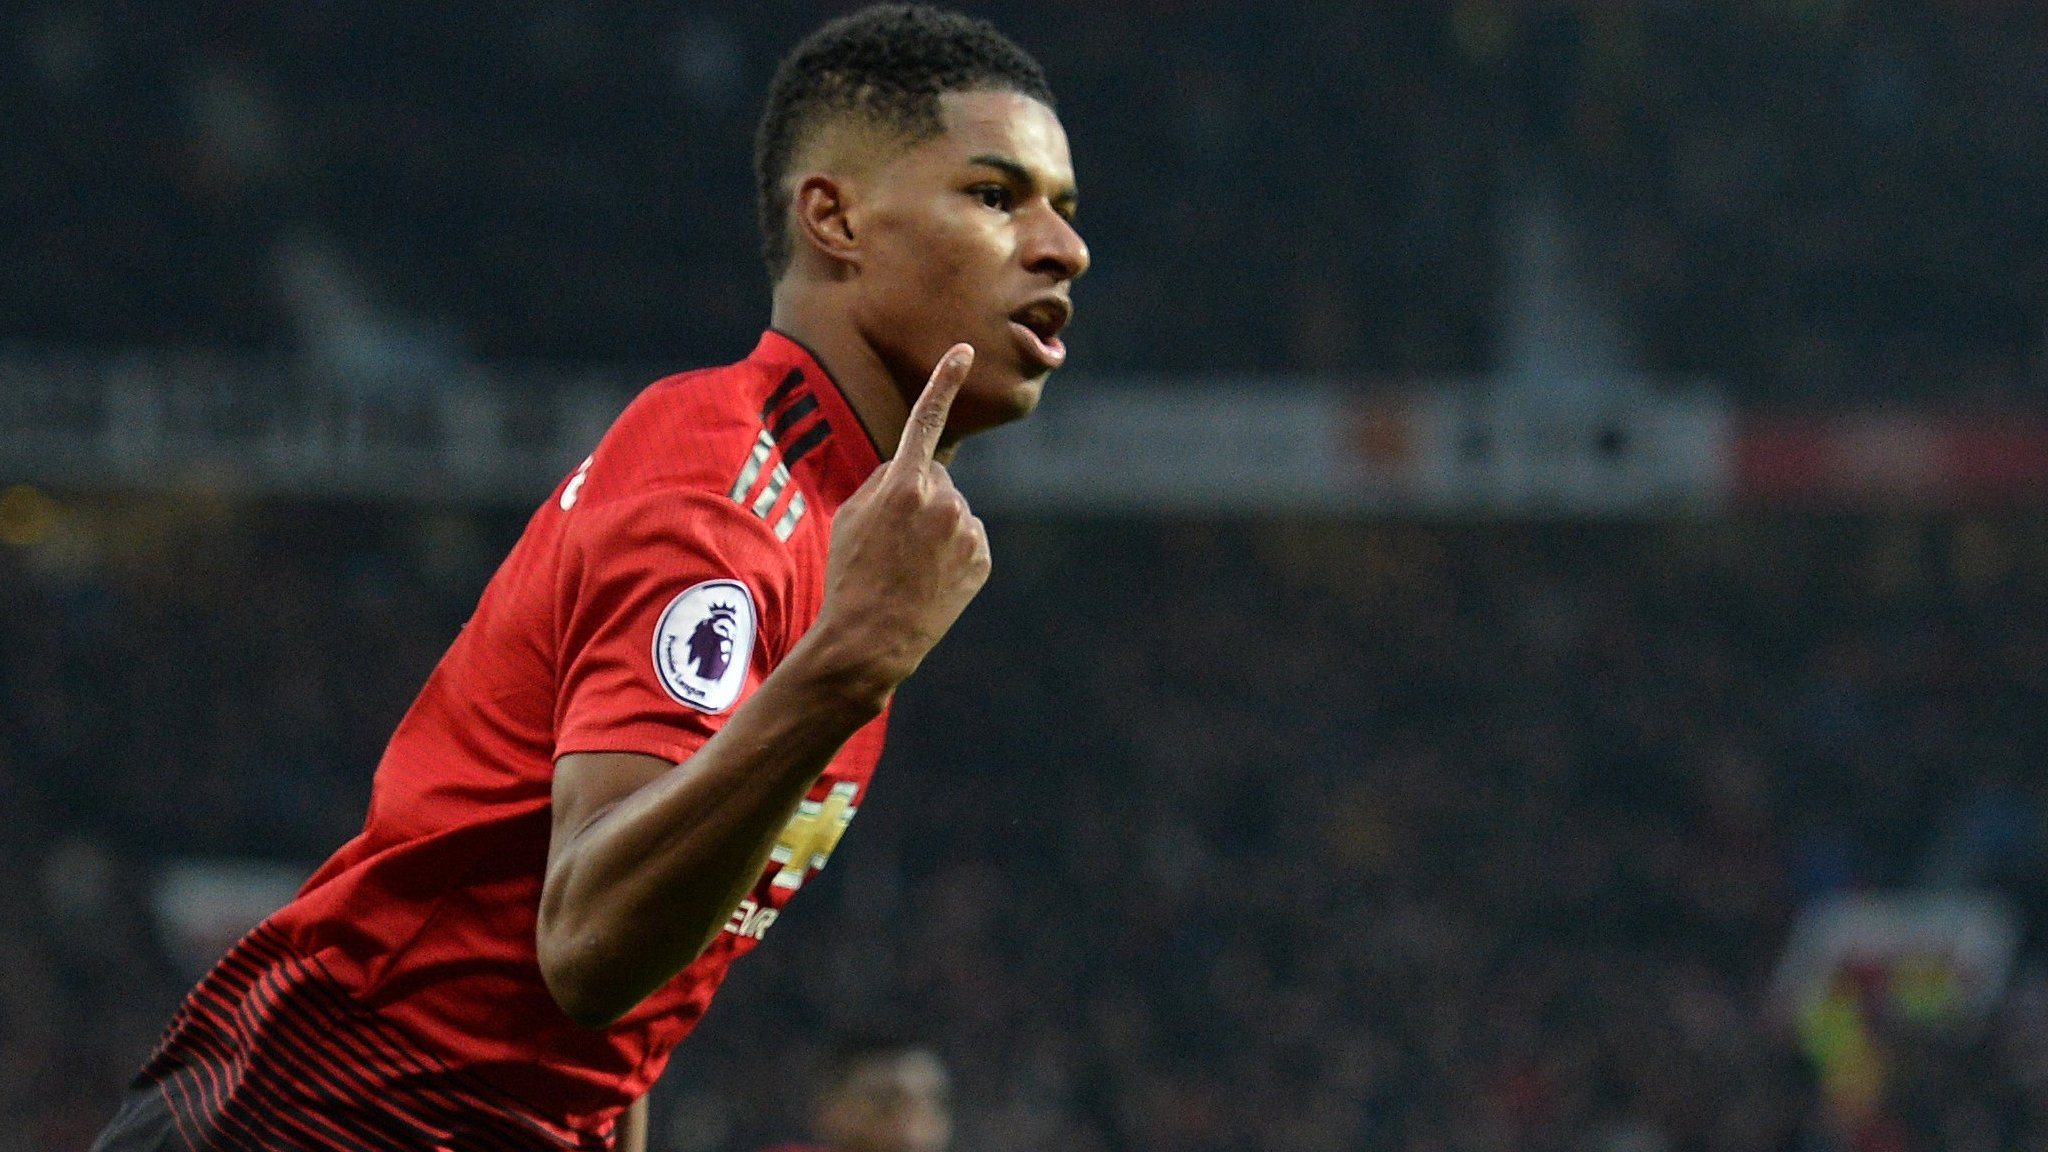 Marcus Rashford can be best striker in league with Harry Kane out injured - Ole Gunnar Solskjaer